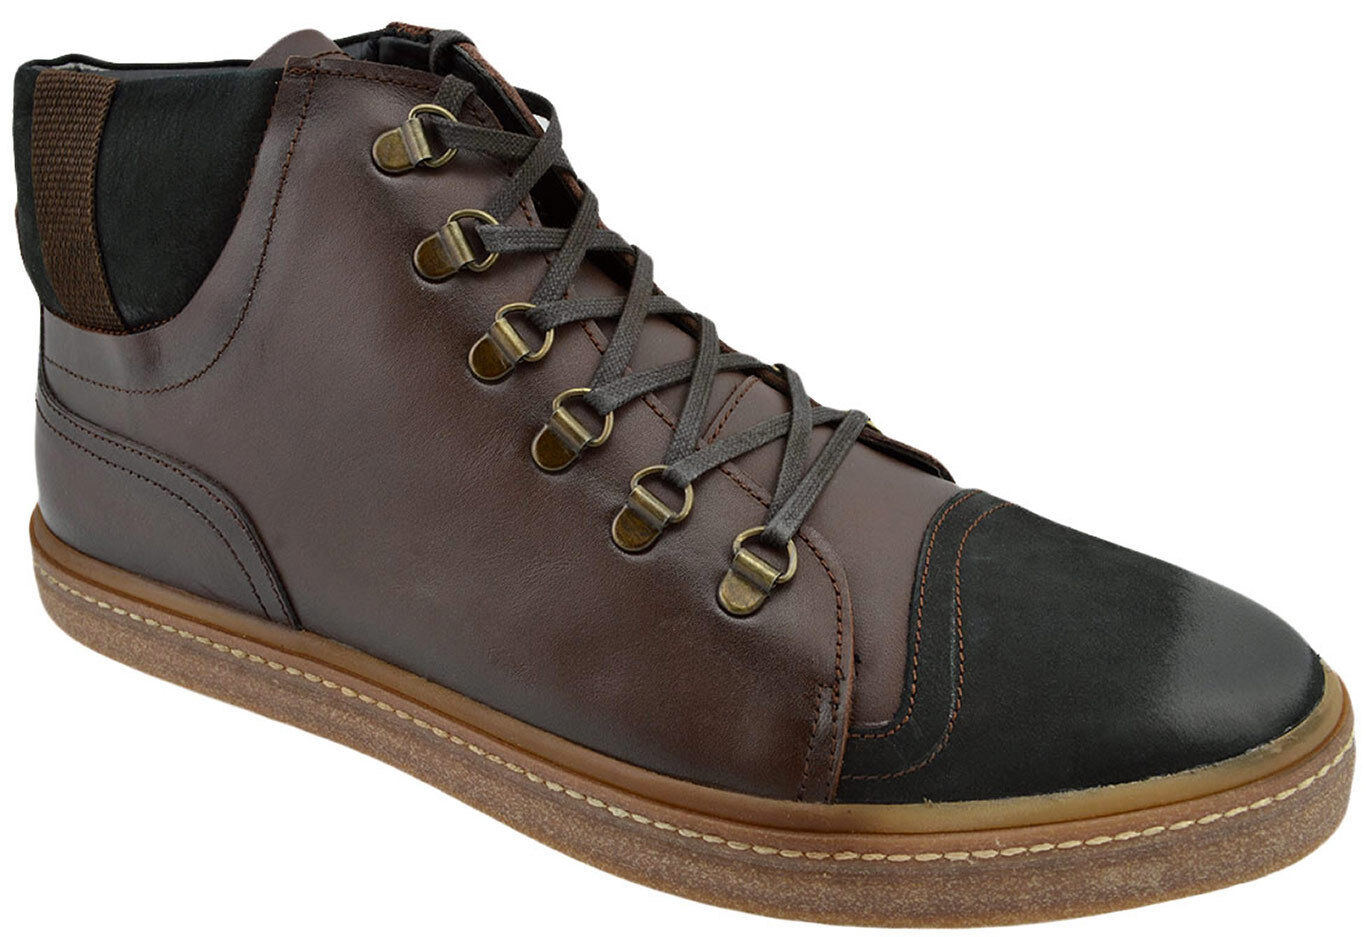 230 OVATTO Brown Black Leather Ankle Boots Sneakers Men shoes NEW COLLECTION